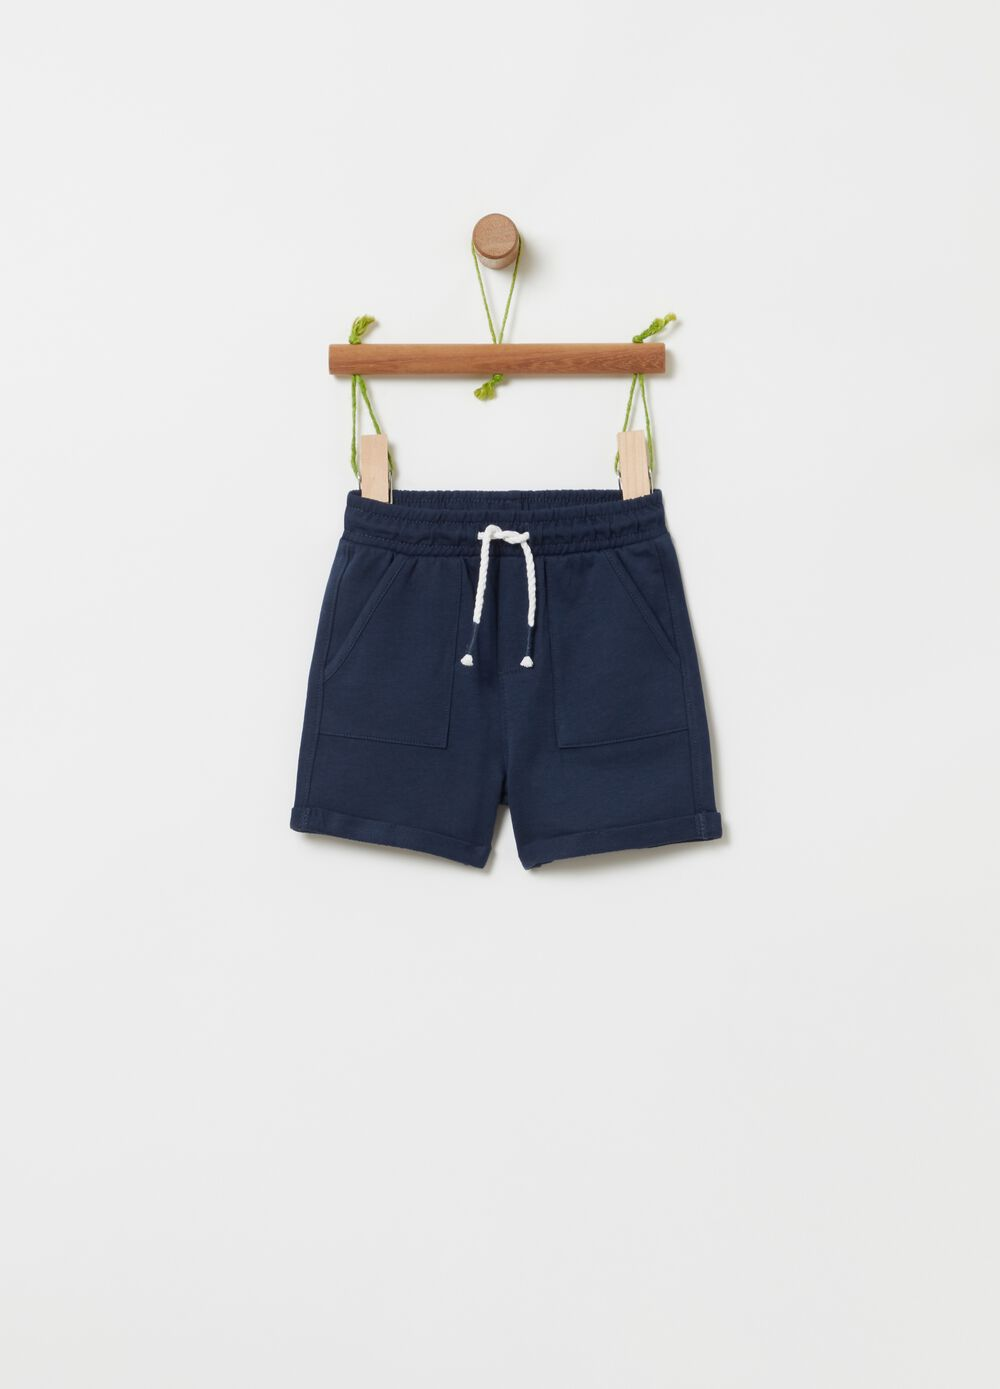 Shorts in 100% organic cotton with pockets